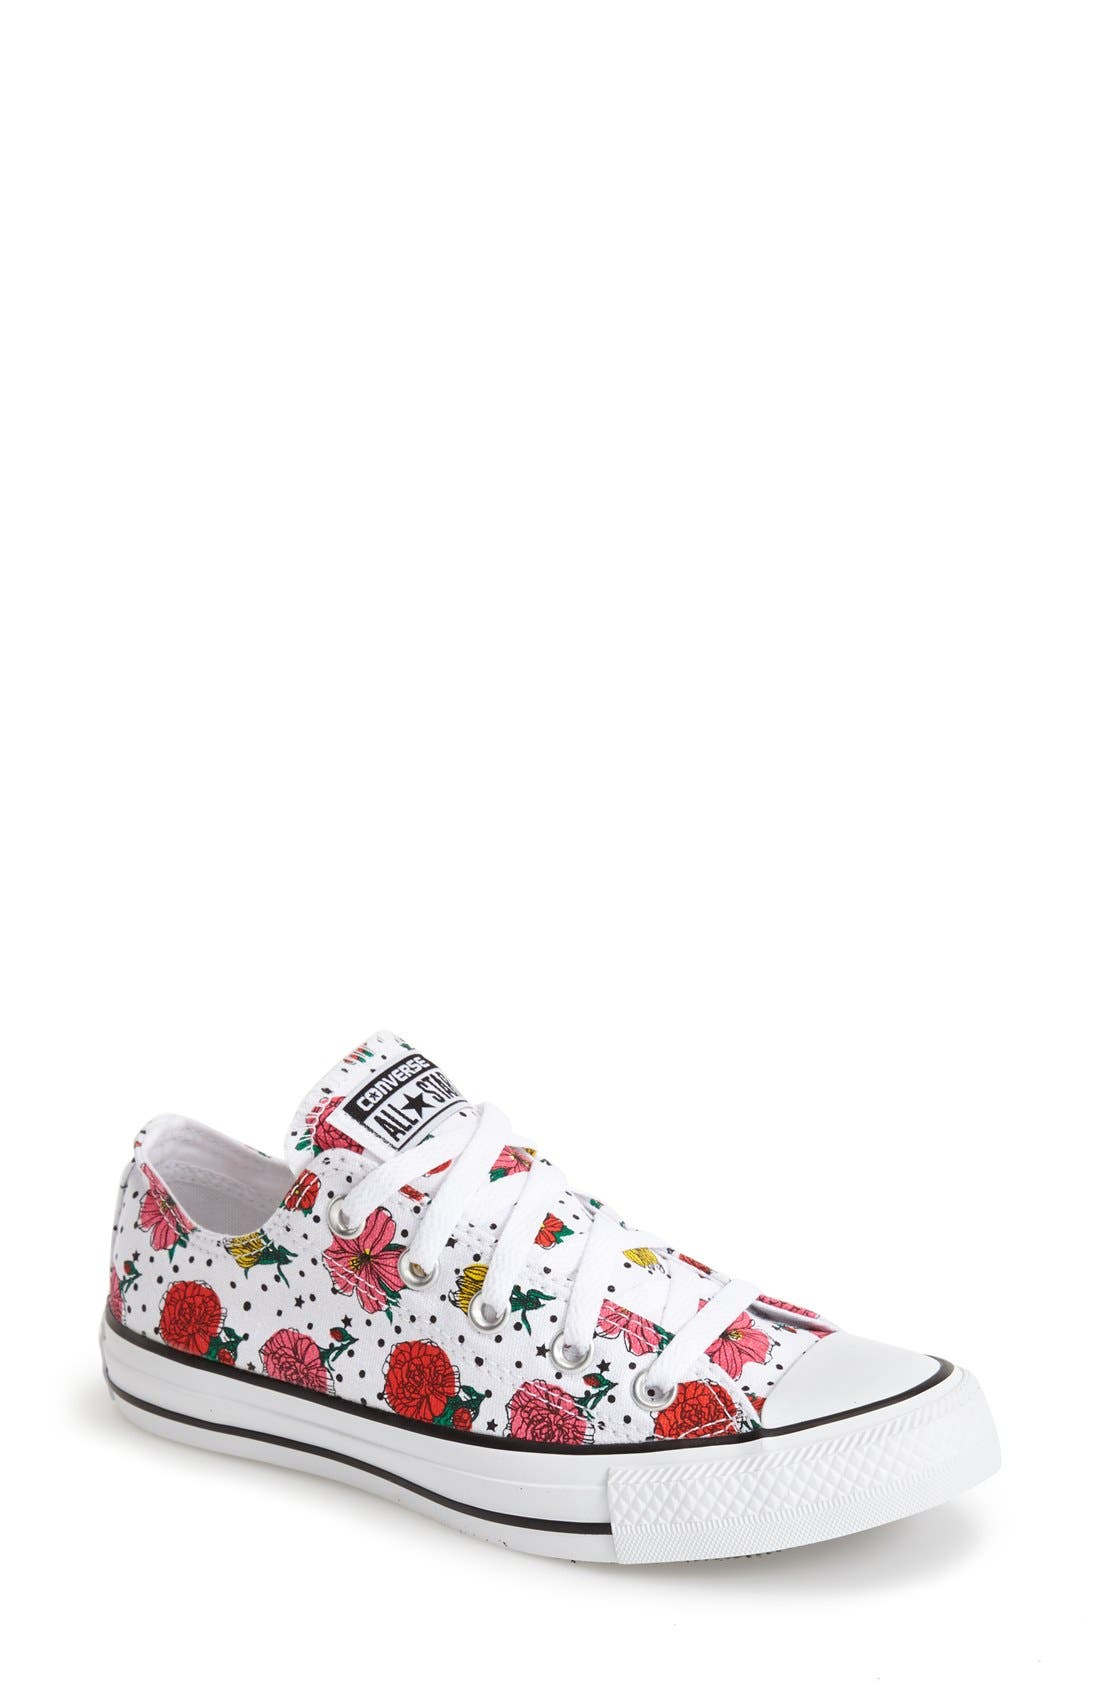 Main Image - Converse Chuck Taylor® All Star® Floral Polka Dot Low Top Sneaker (Women)